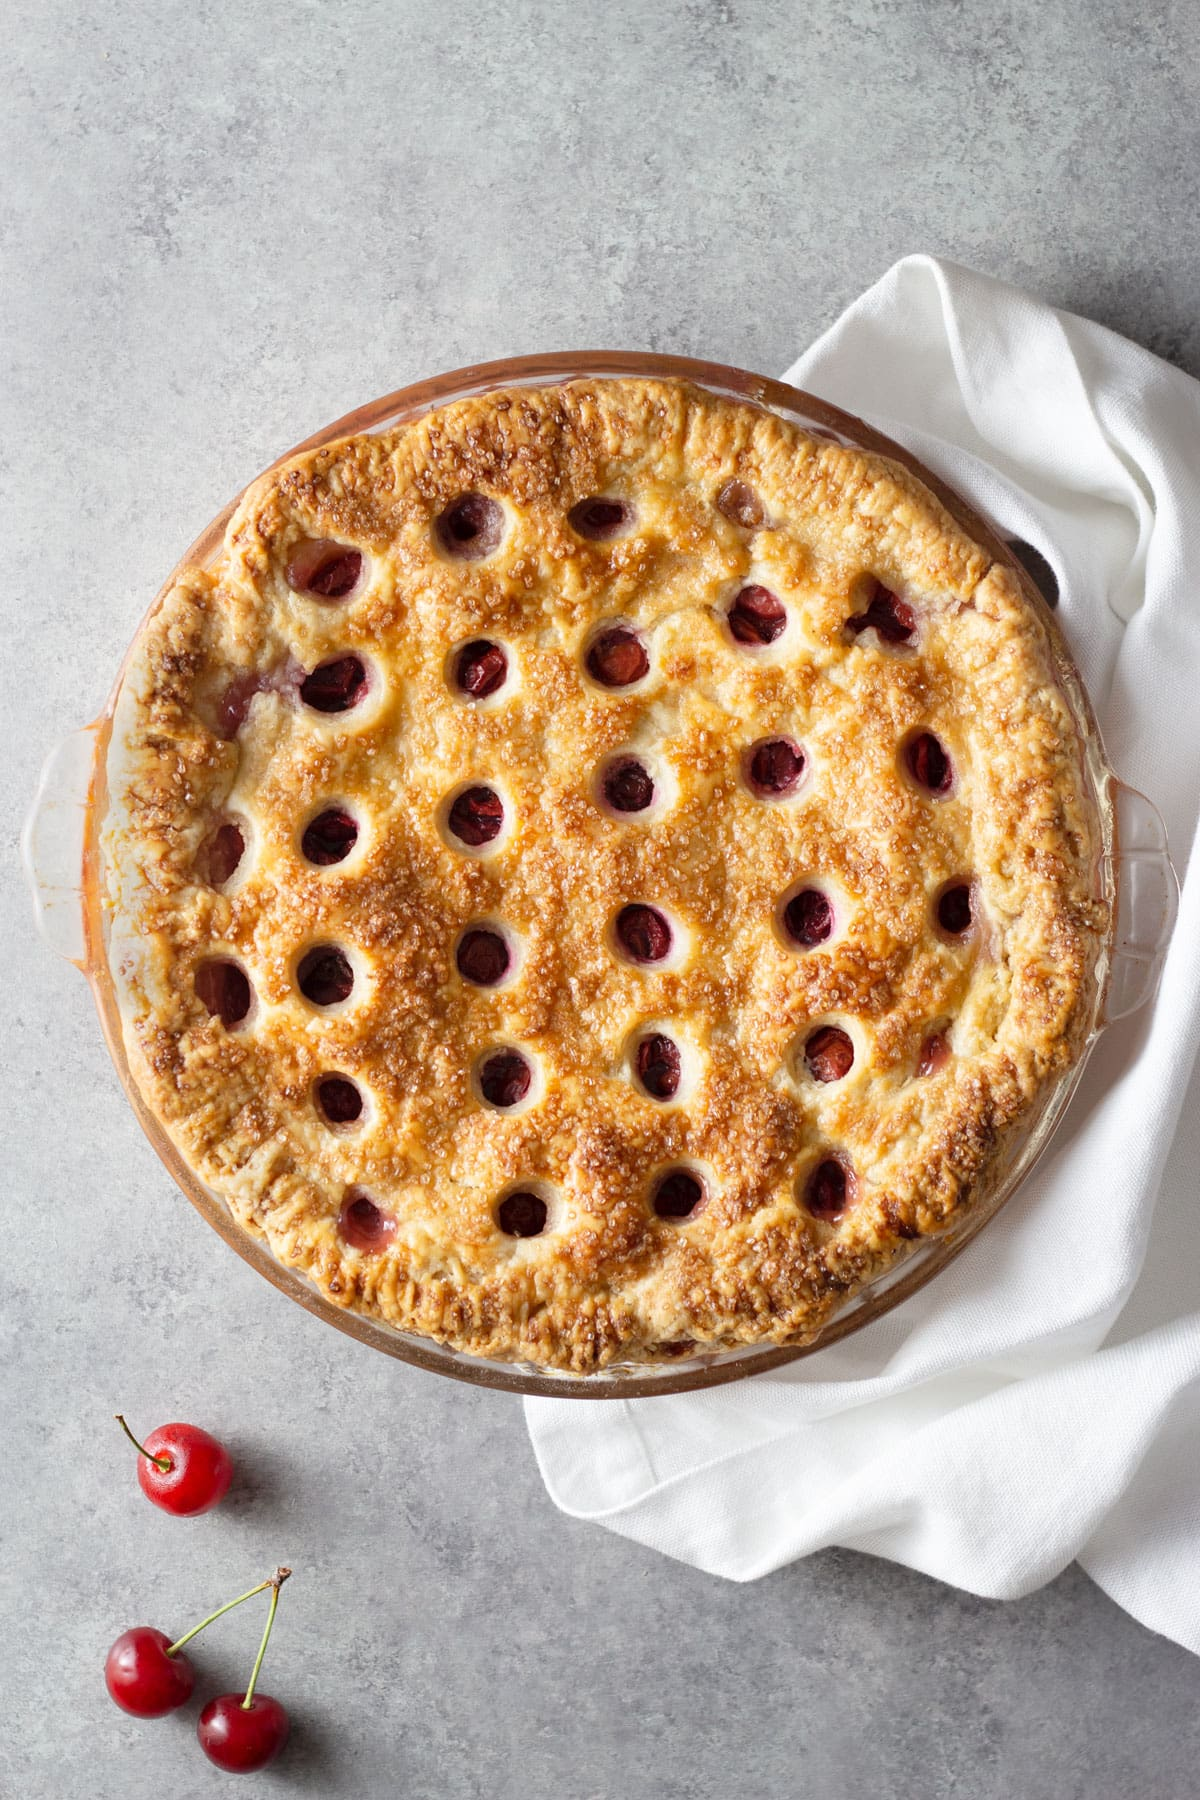 Overhead view of a Sour Cherry Pie with circles cut out of the top crust on a grey surface next to cherries and a dish towel.